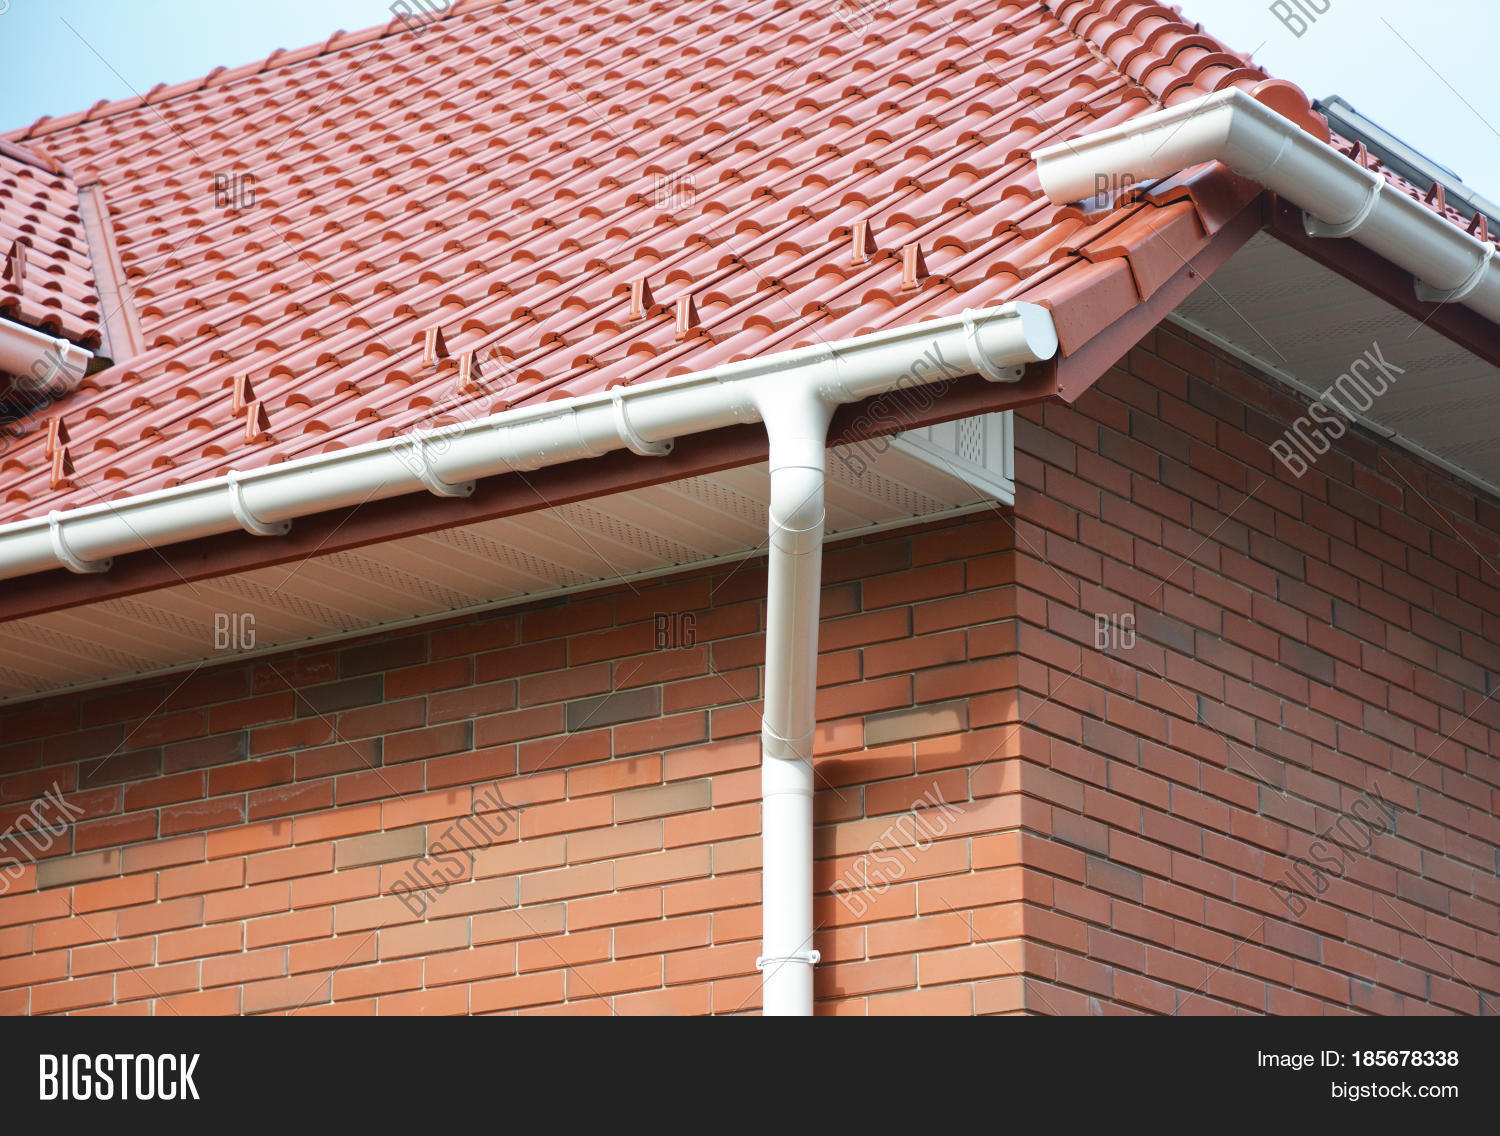 Close on house problem areas rain image photo bigstock for House roof drain pipes